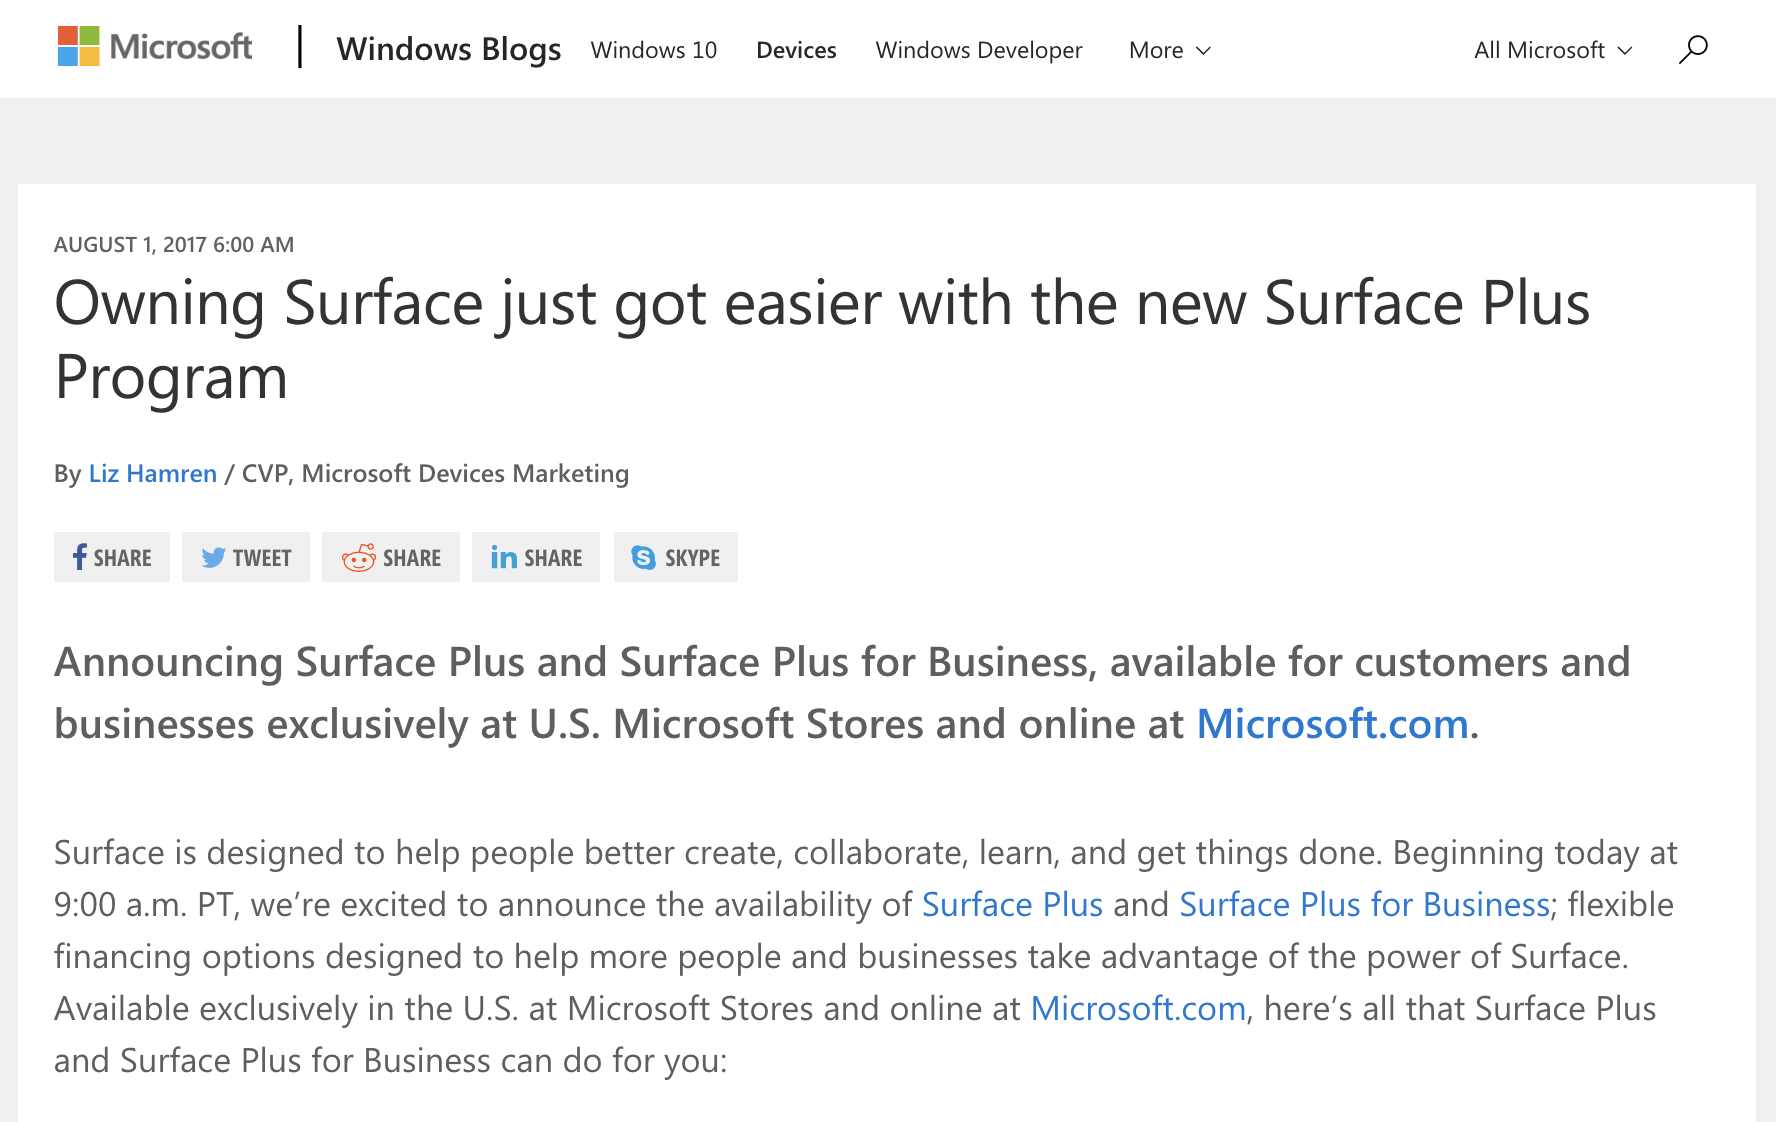 Microsoft Surface Plus Financing Announcement Blog Post (2017)